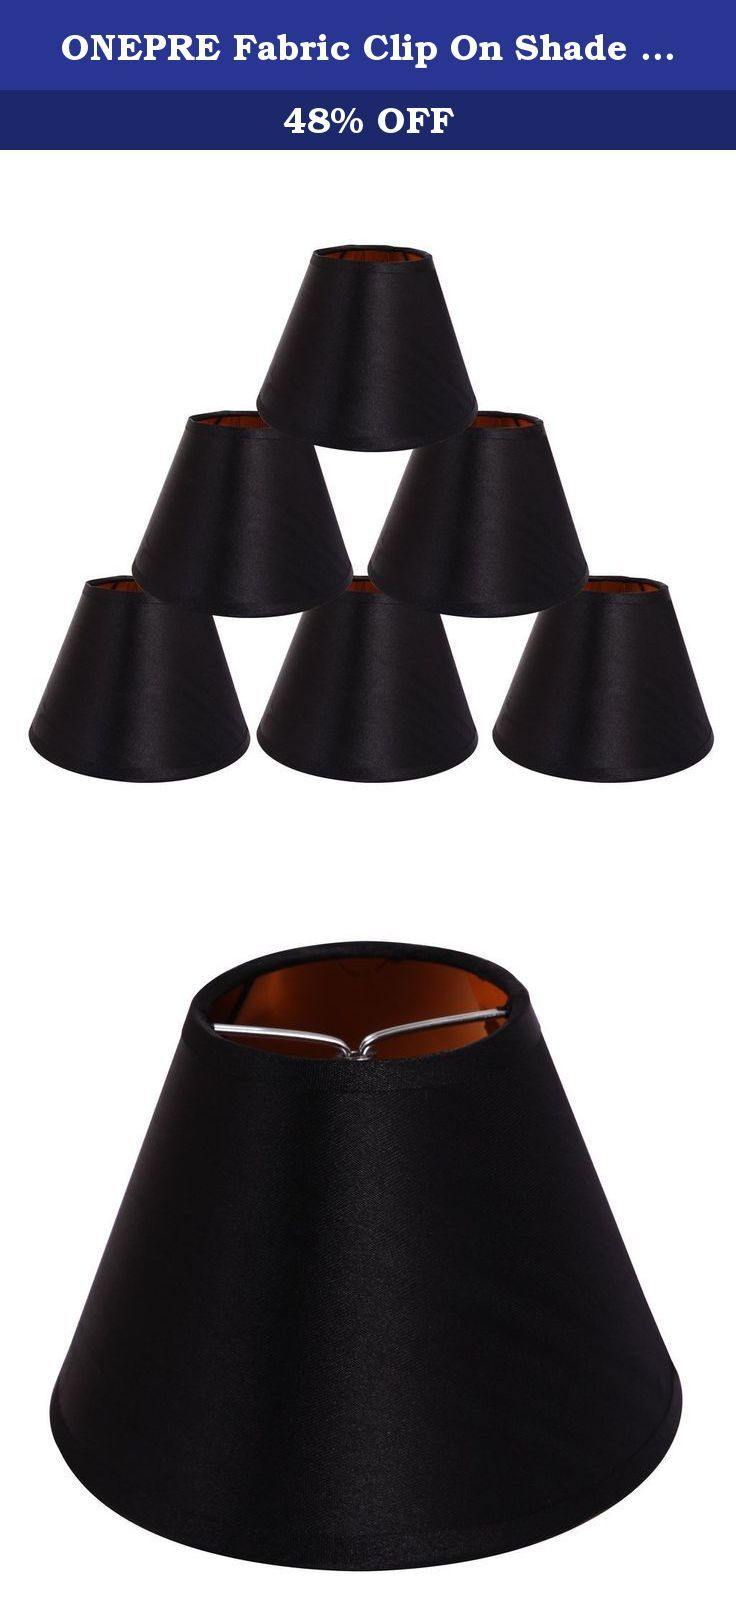 Onepre fabric clip on shade chandelier lamp shades 55 inch onepre fabric clip on shade chandelier lamp shades 55 inch hardback black arubaitofo Choice Image